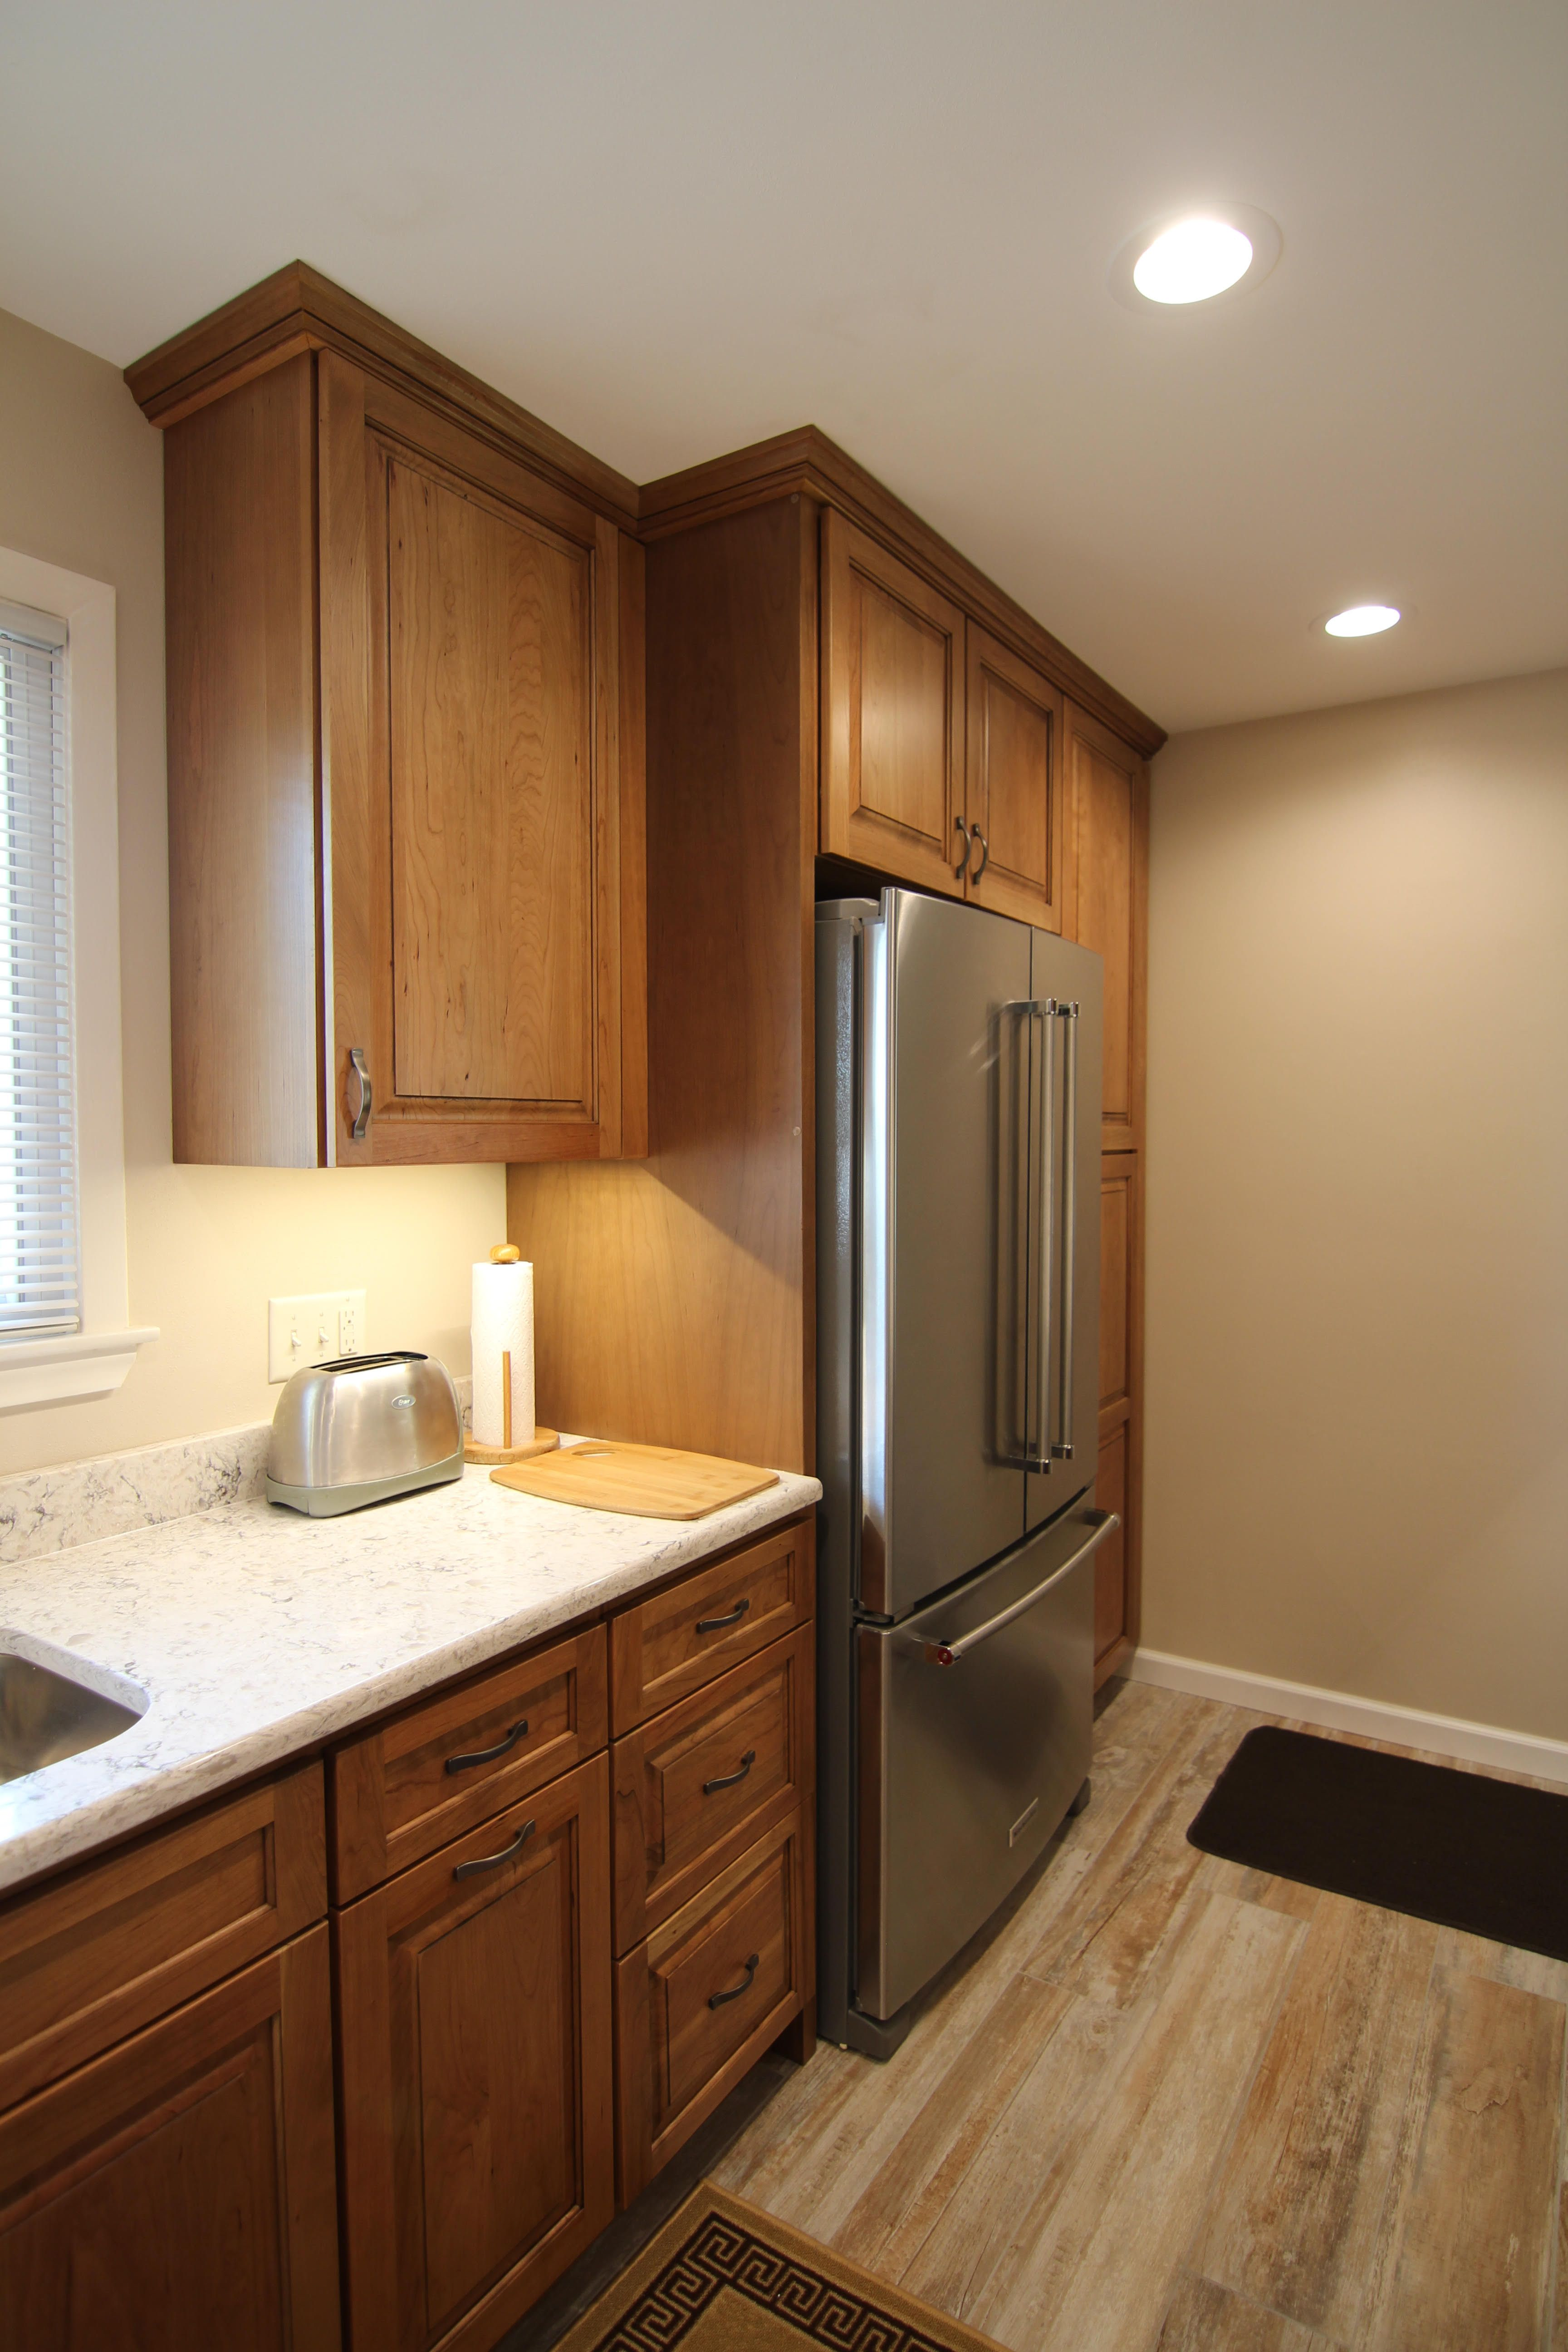 Remodeled Kitchen Incorporating Warm Tones Kitchen Remodel Home Kitchens Home Remodeling